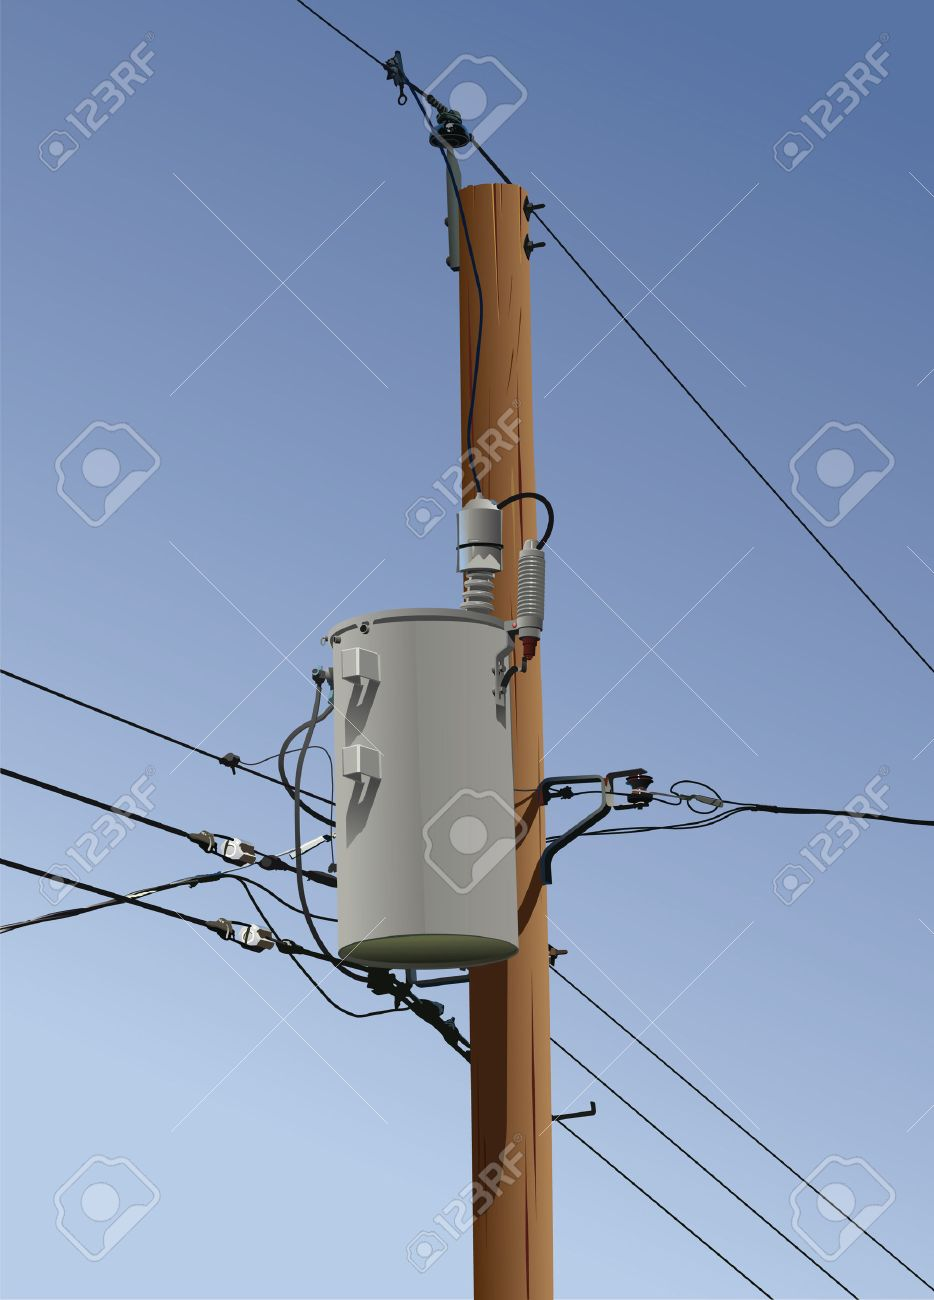 Electrical or utility pole with transformer wires and insulators. Stock Vector - 4451911 : pole transformer wiring - yogabreezes.com